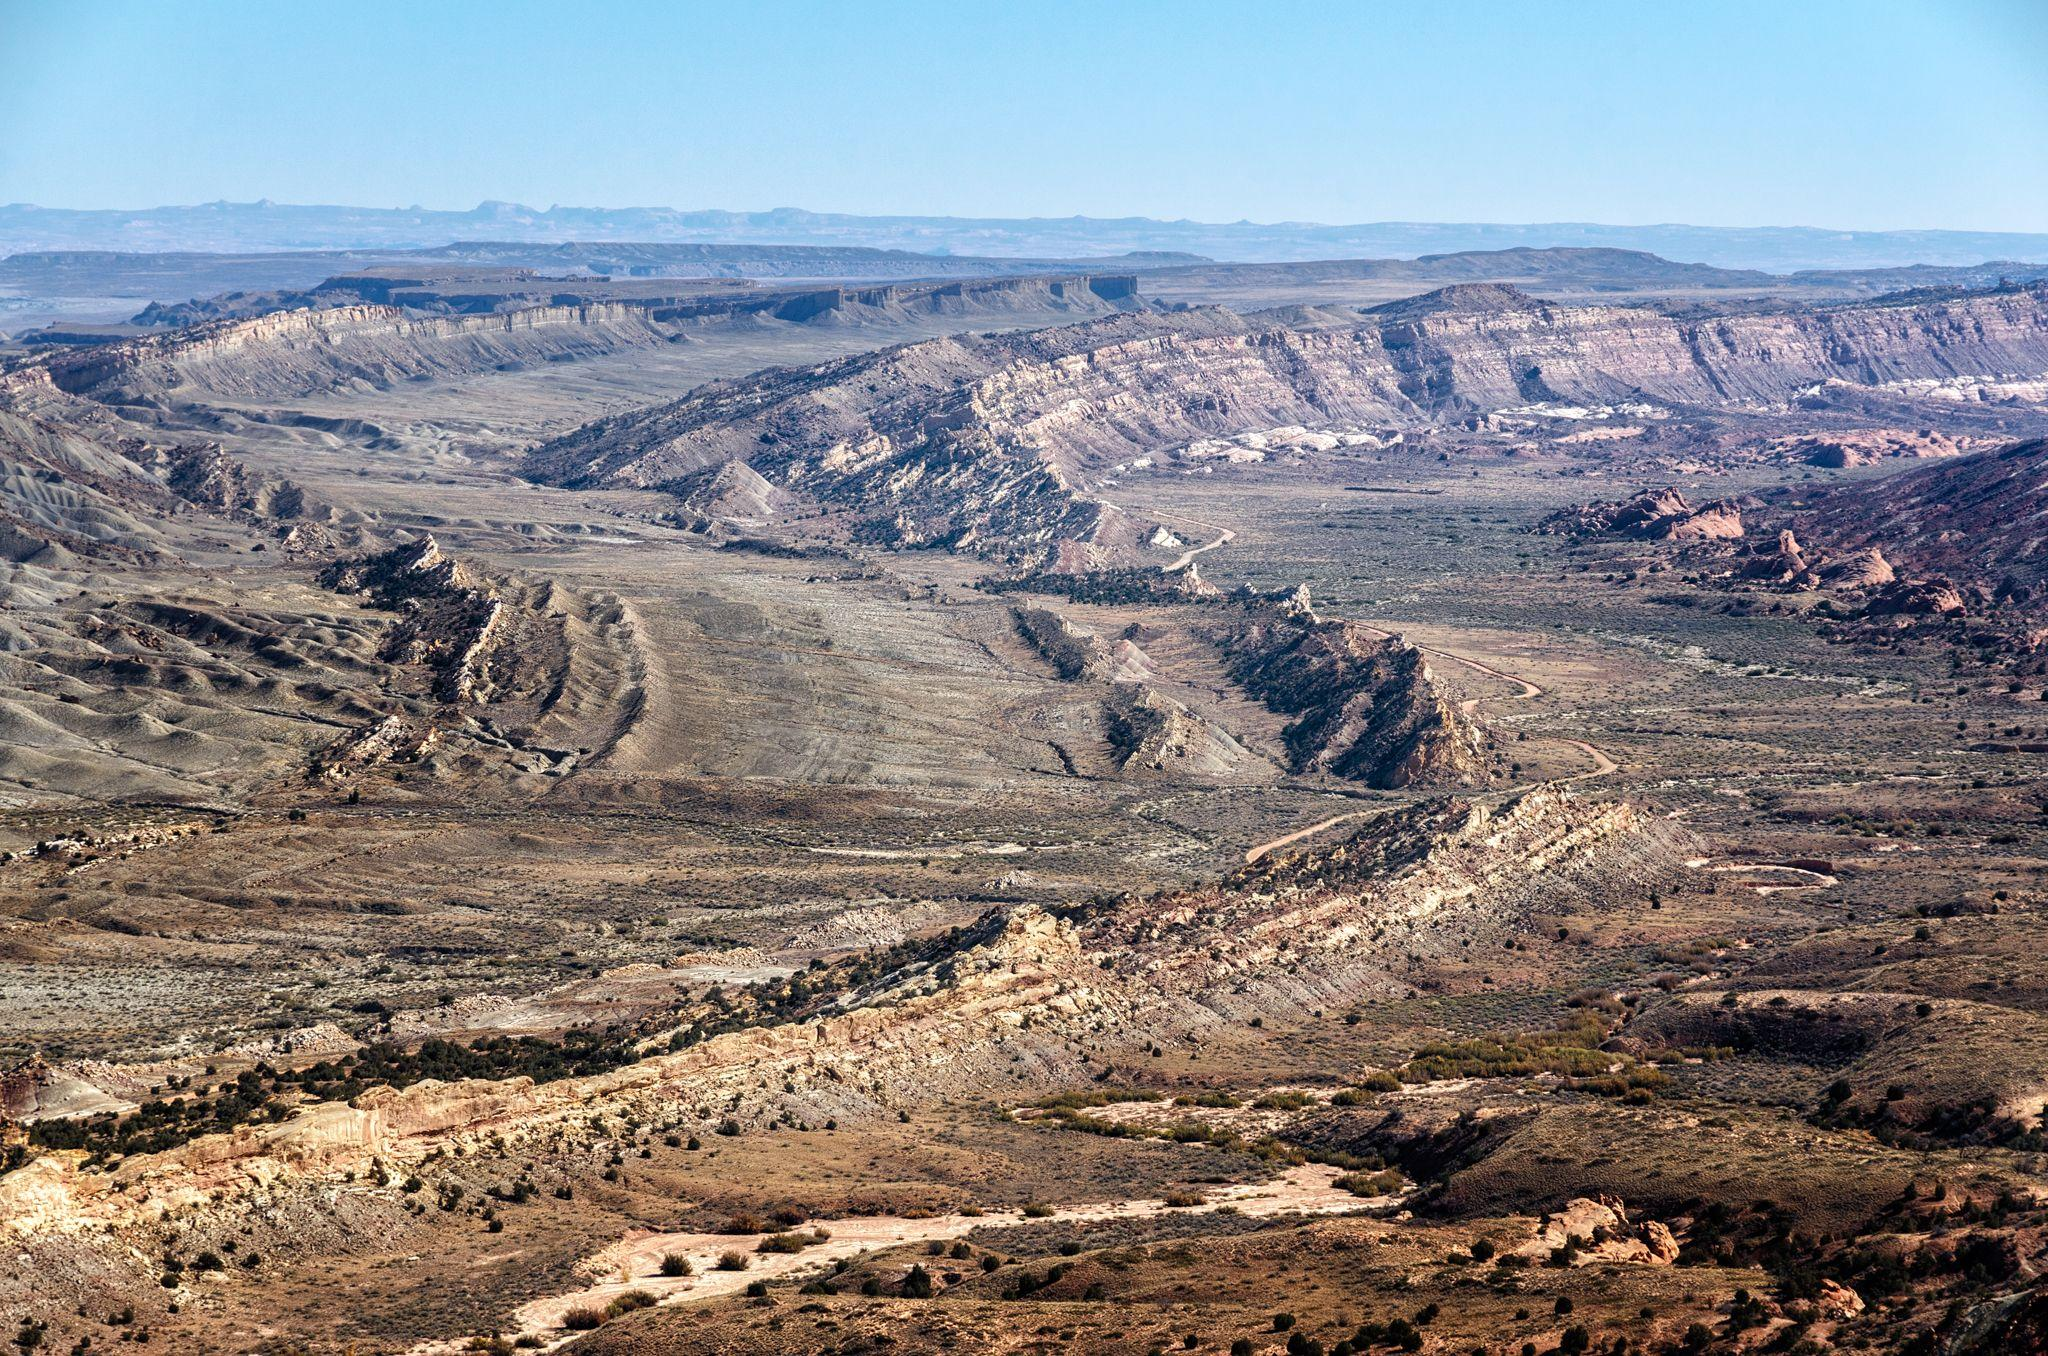 Strike Valley overlook in Capitol Reef National Park